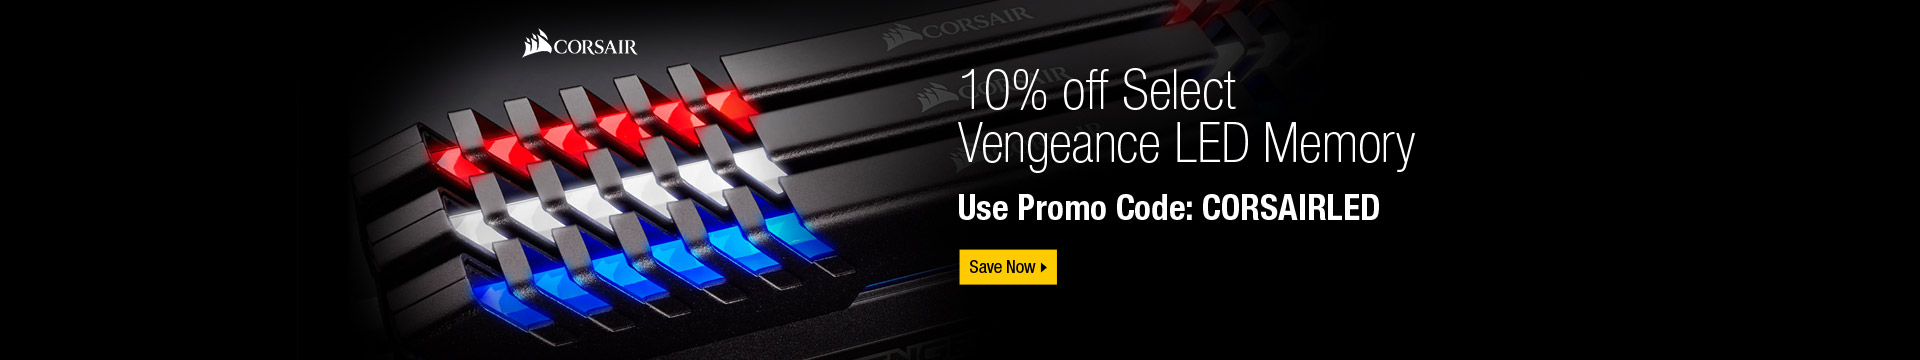 10% off Vengeance LED Memory Below